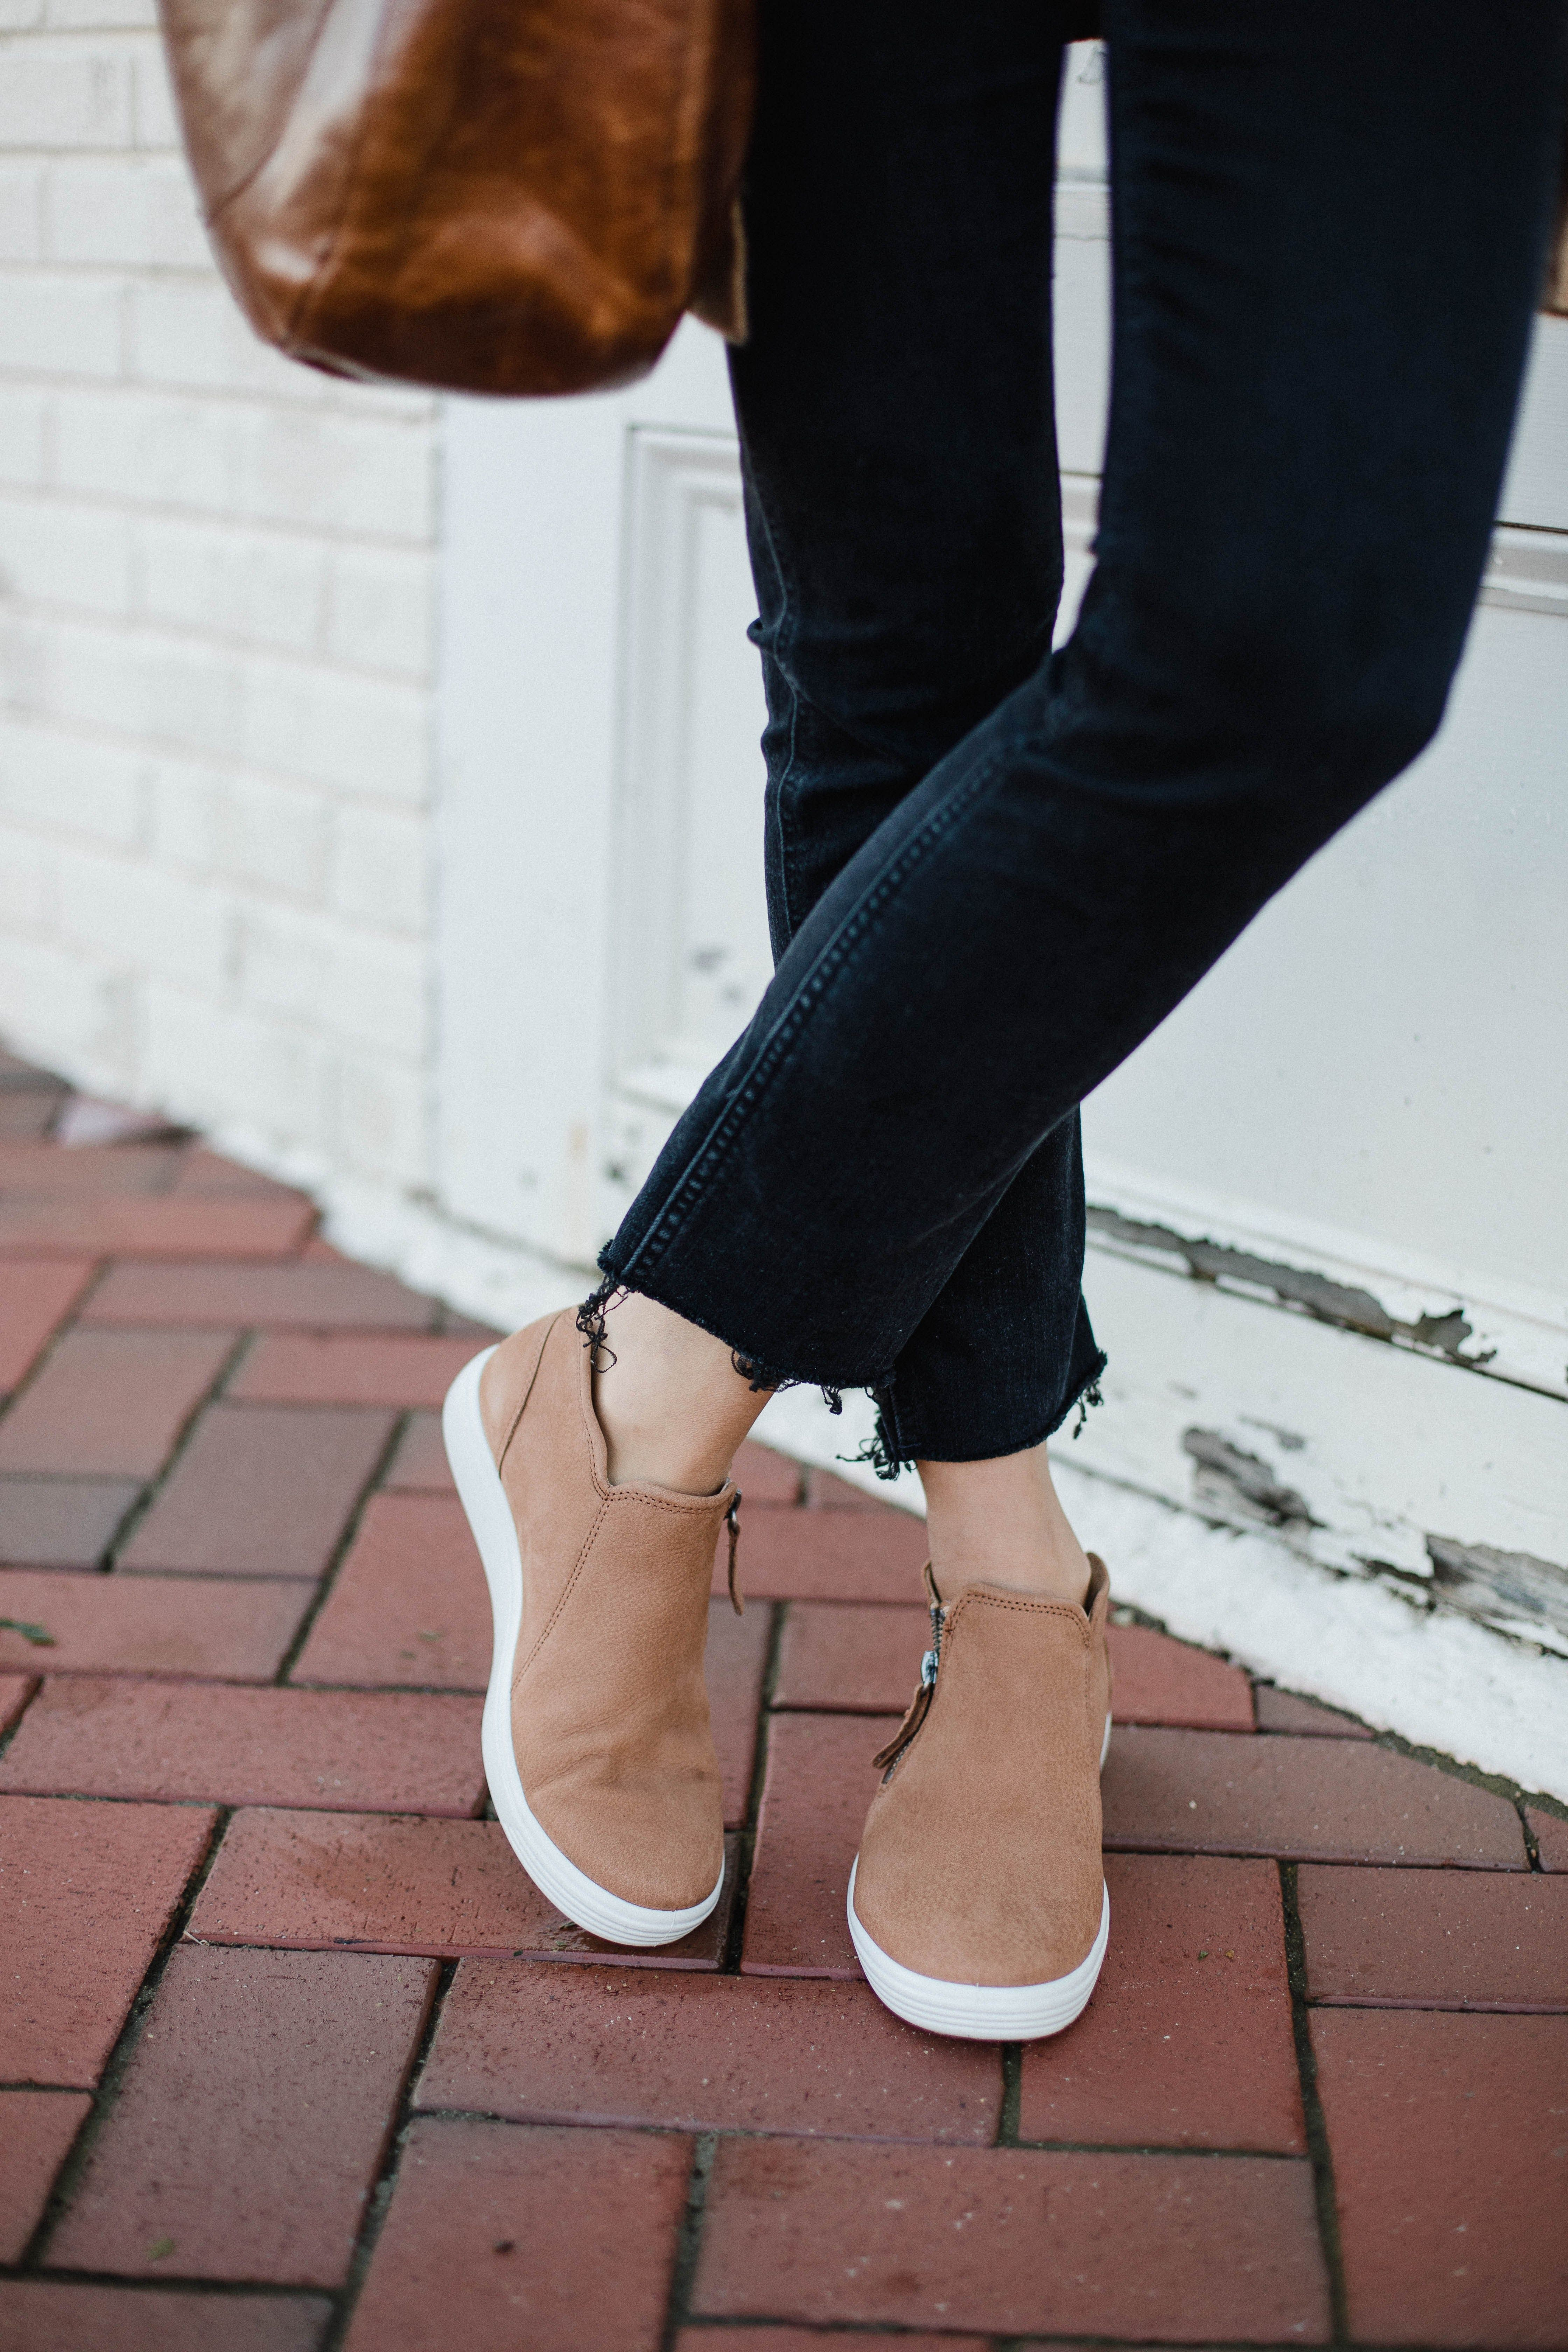 Best Casual Sneakers for Comfort #fallshoes